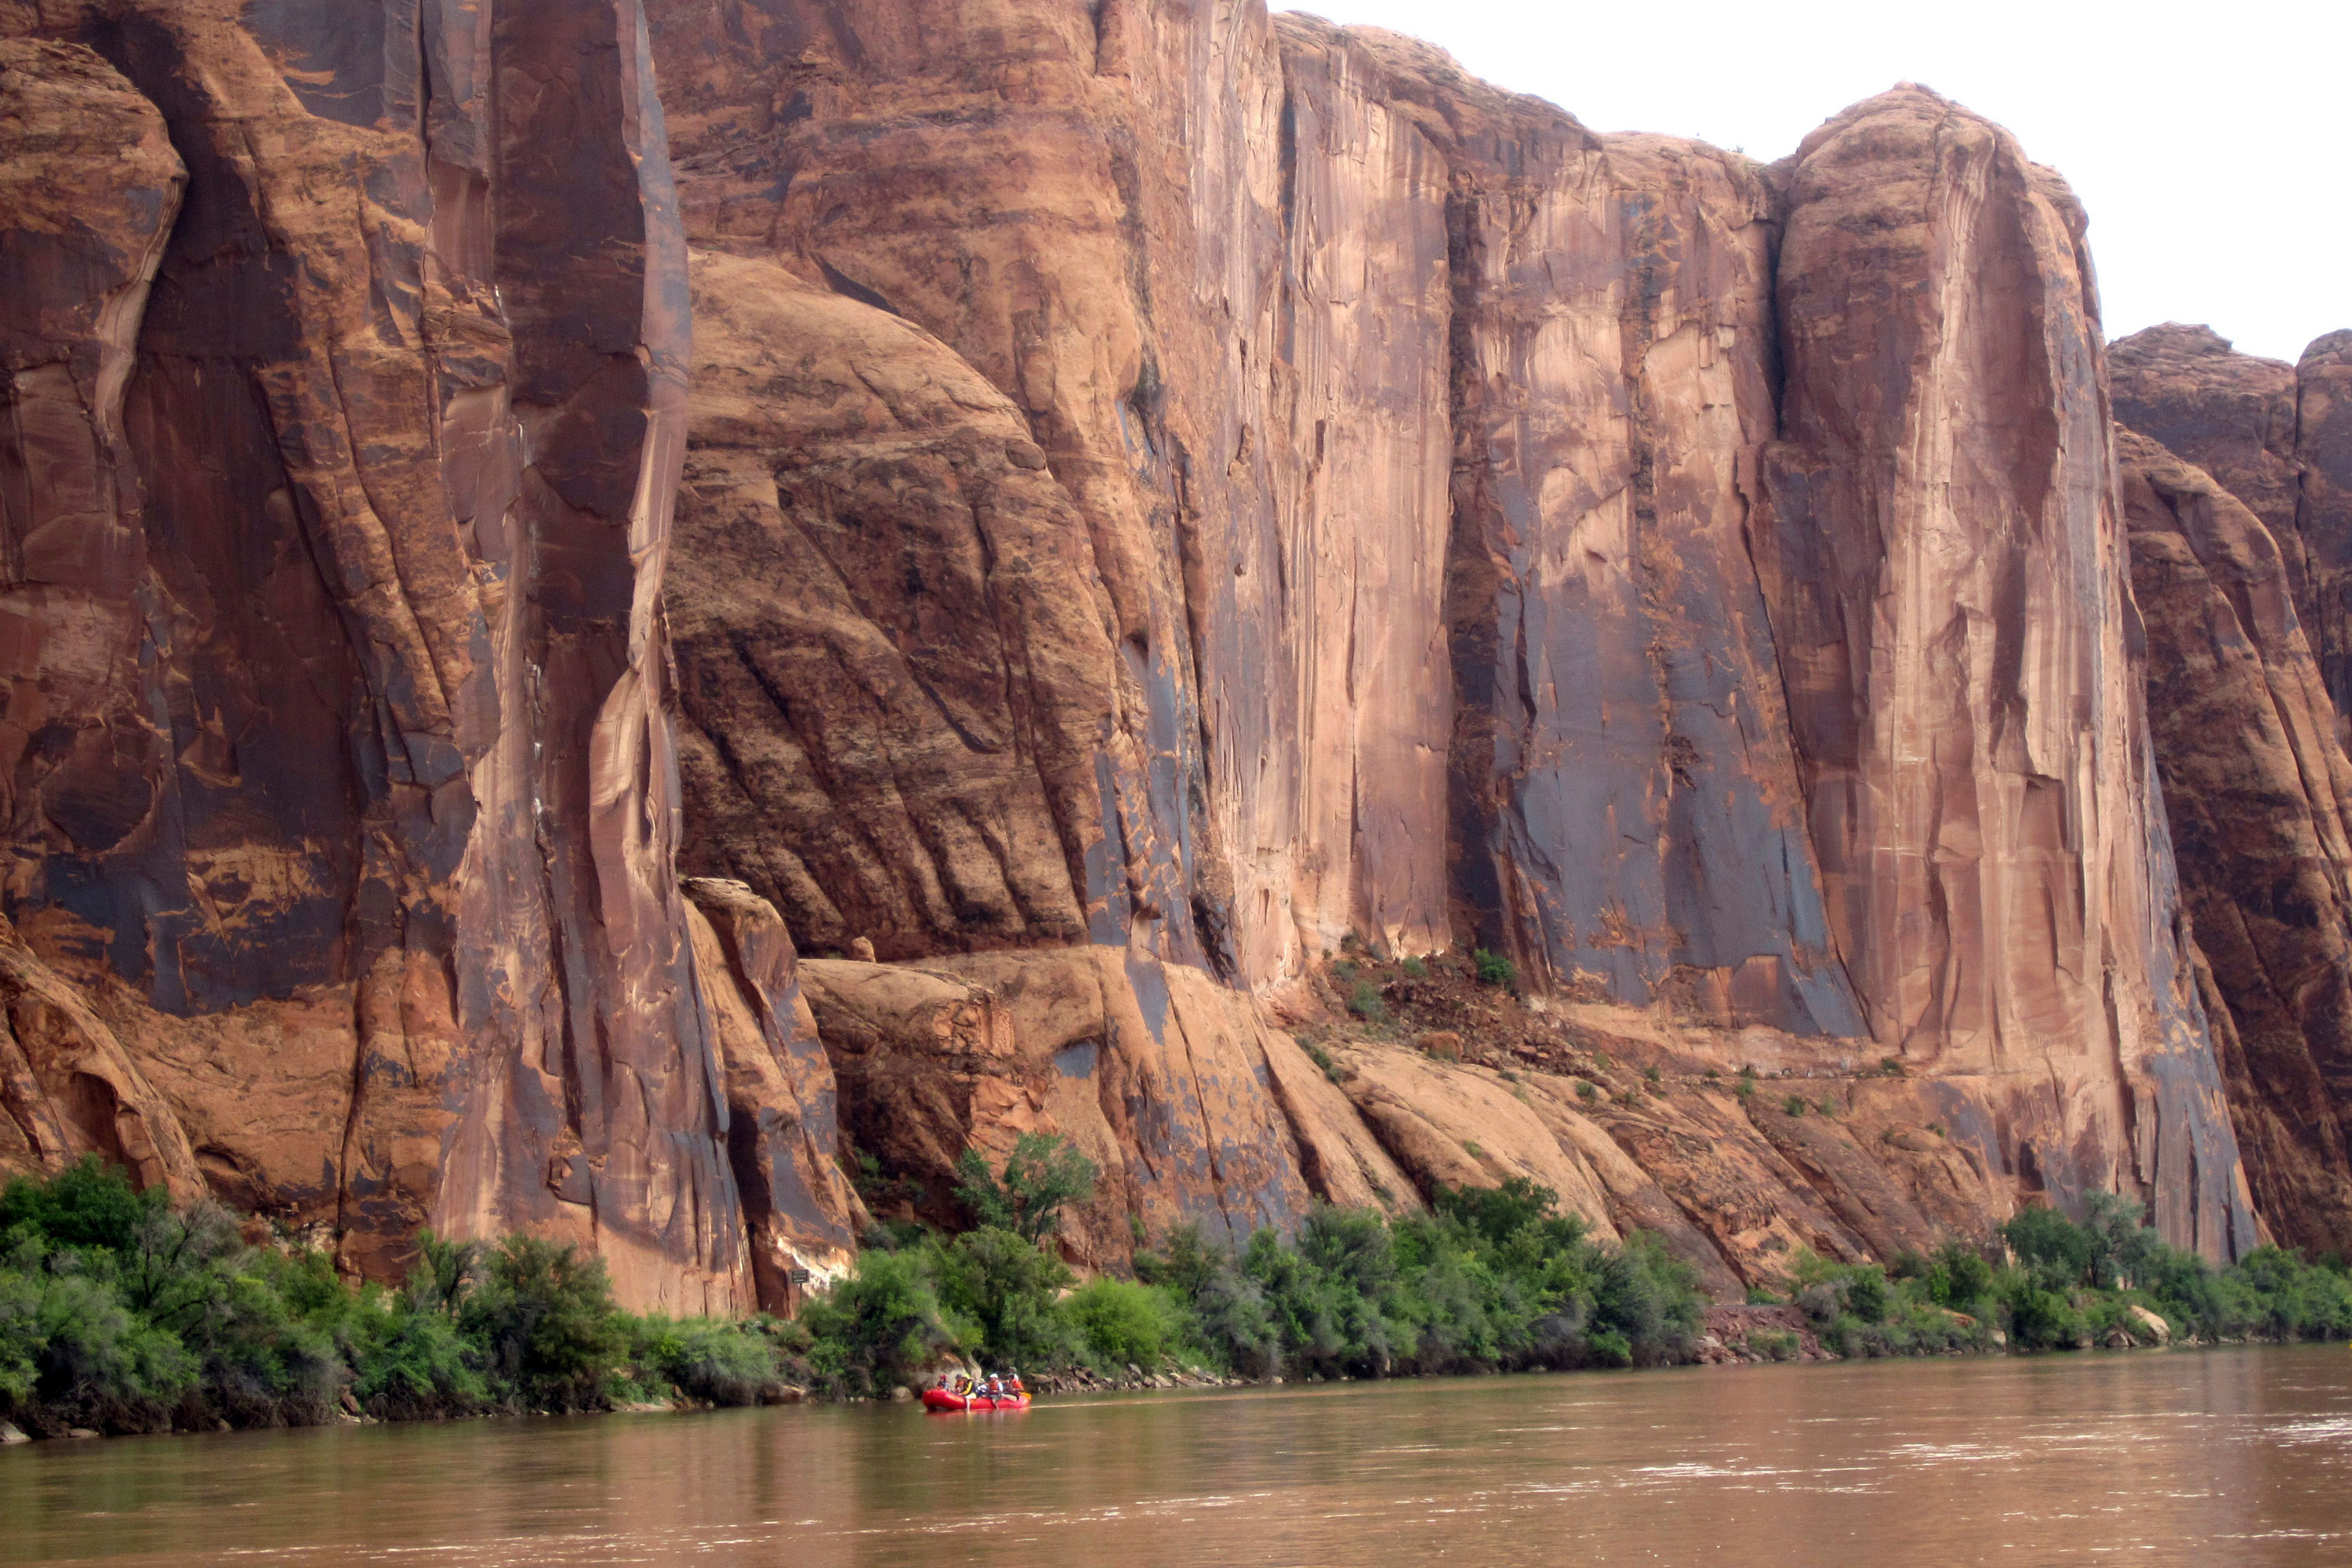 Photo: Drought Colorado River - AP